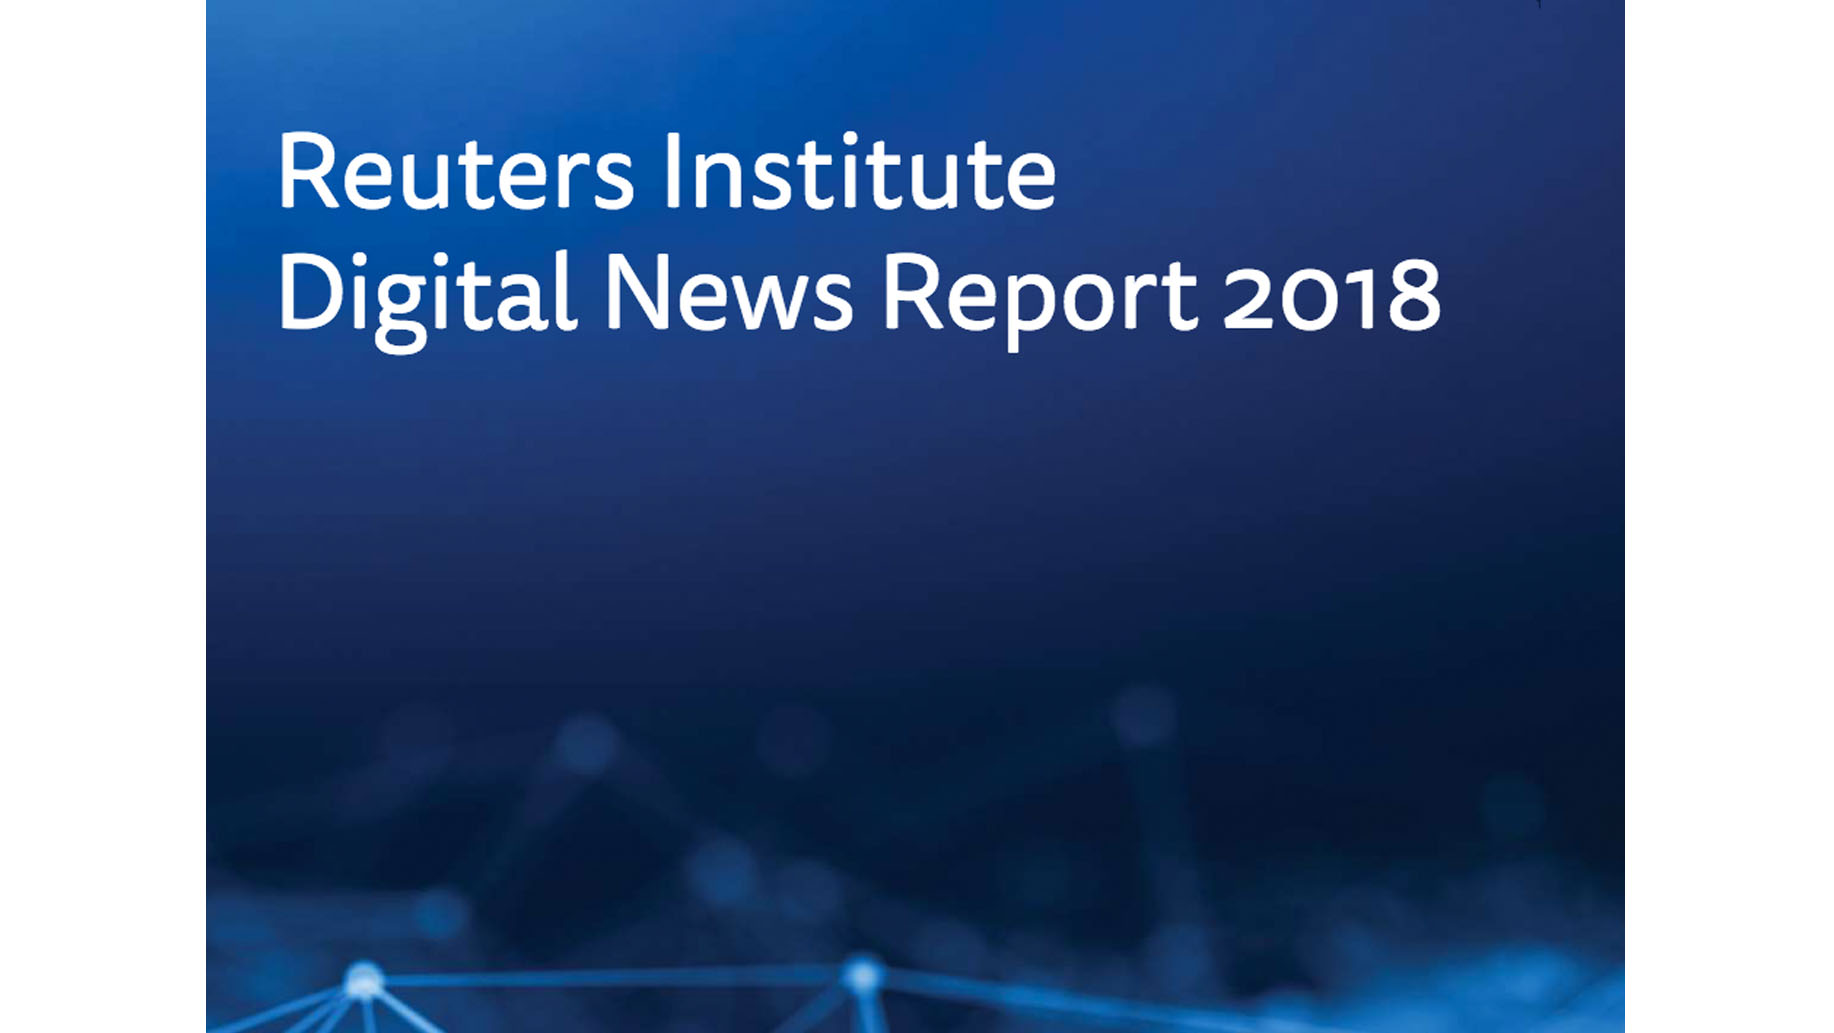 reuters-digital-news-2018-1